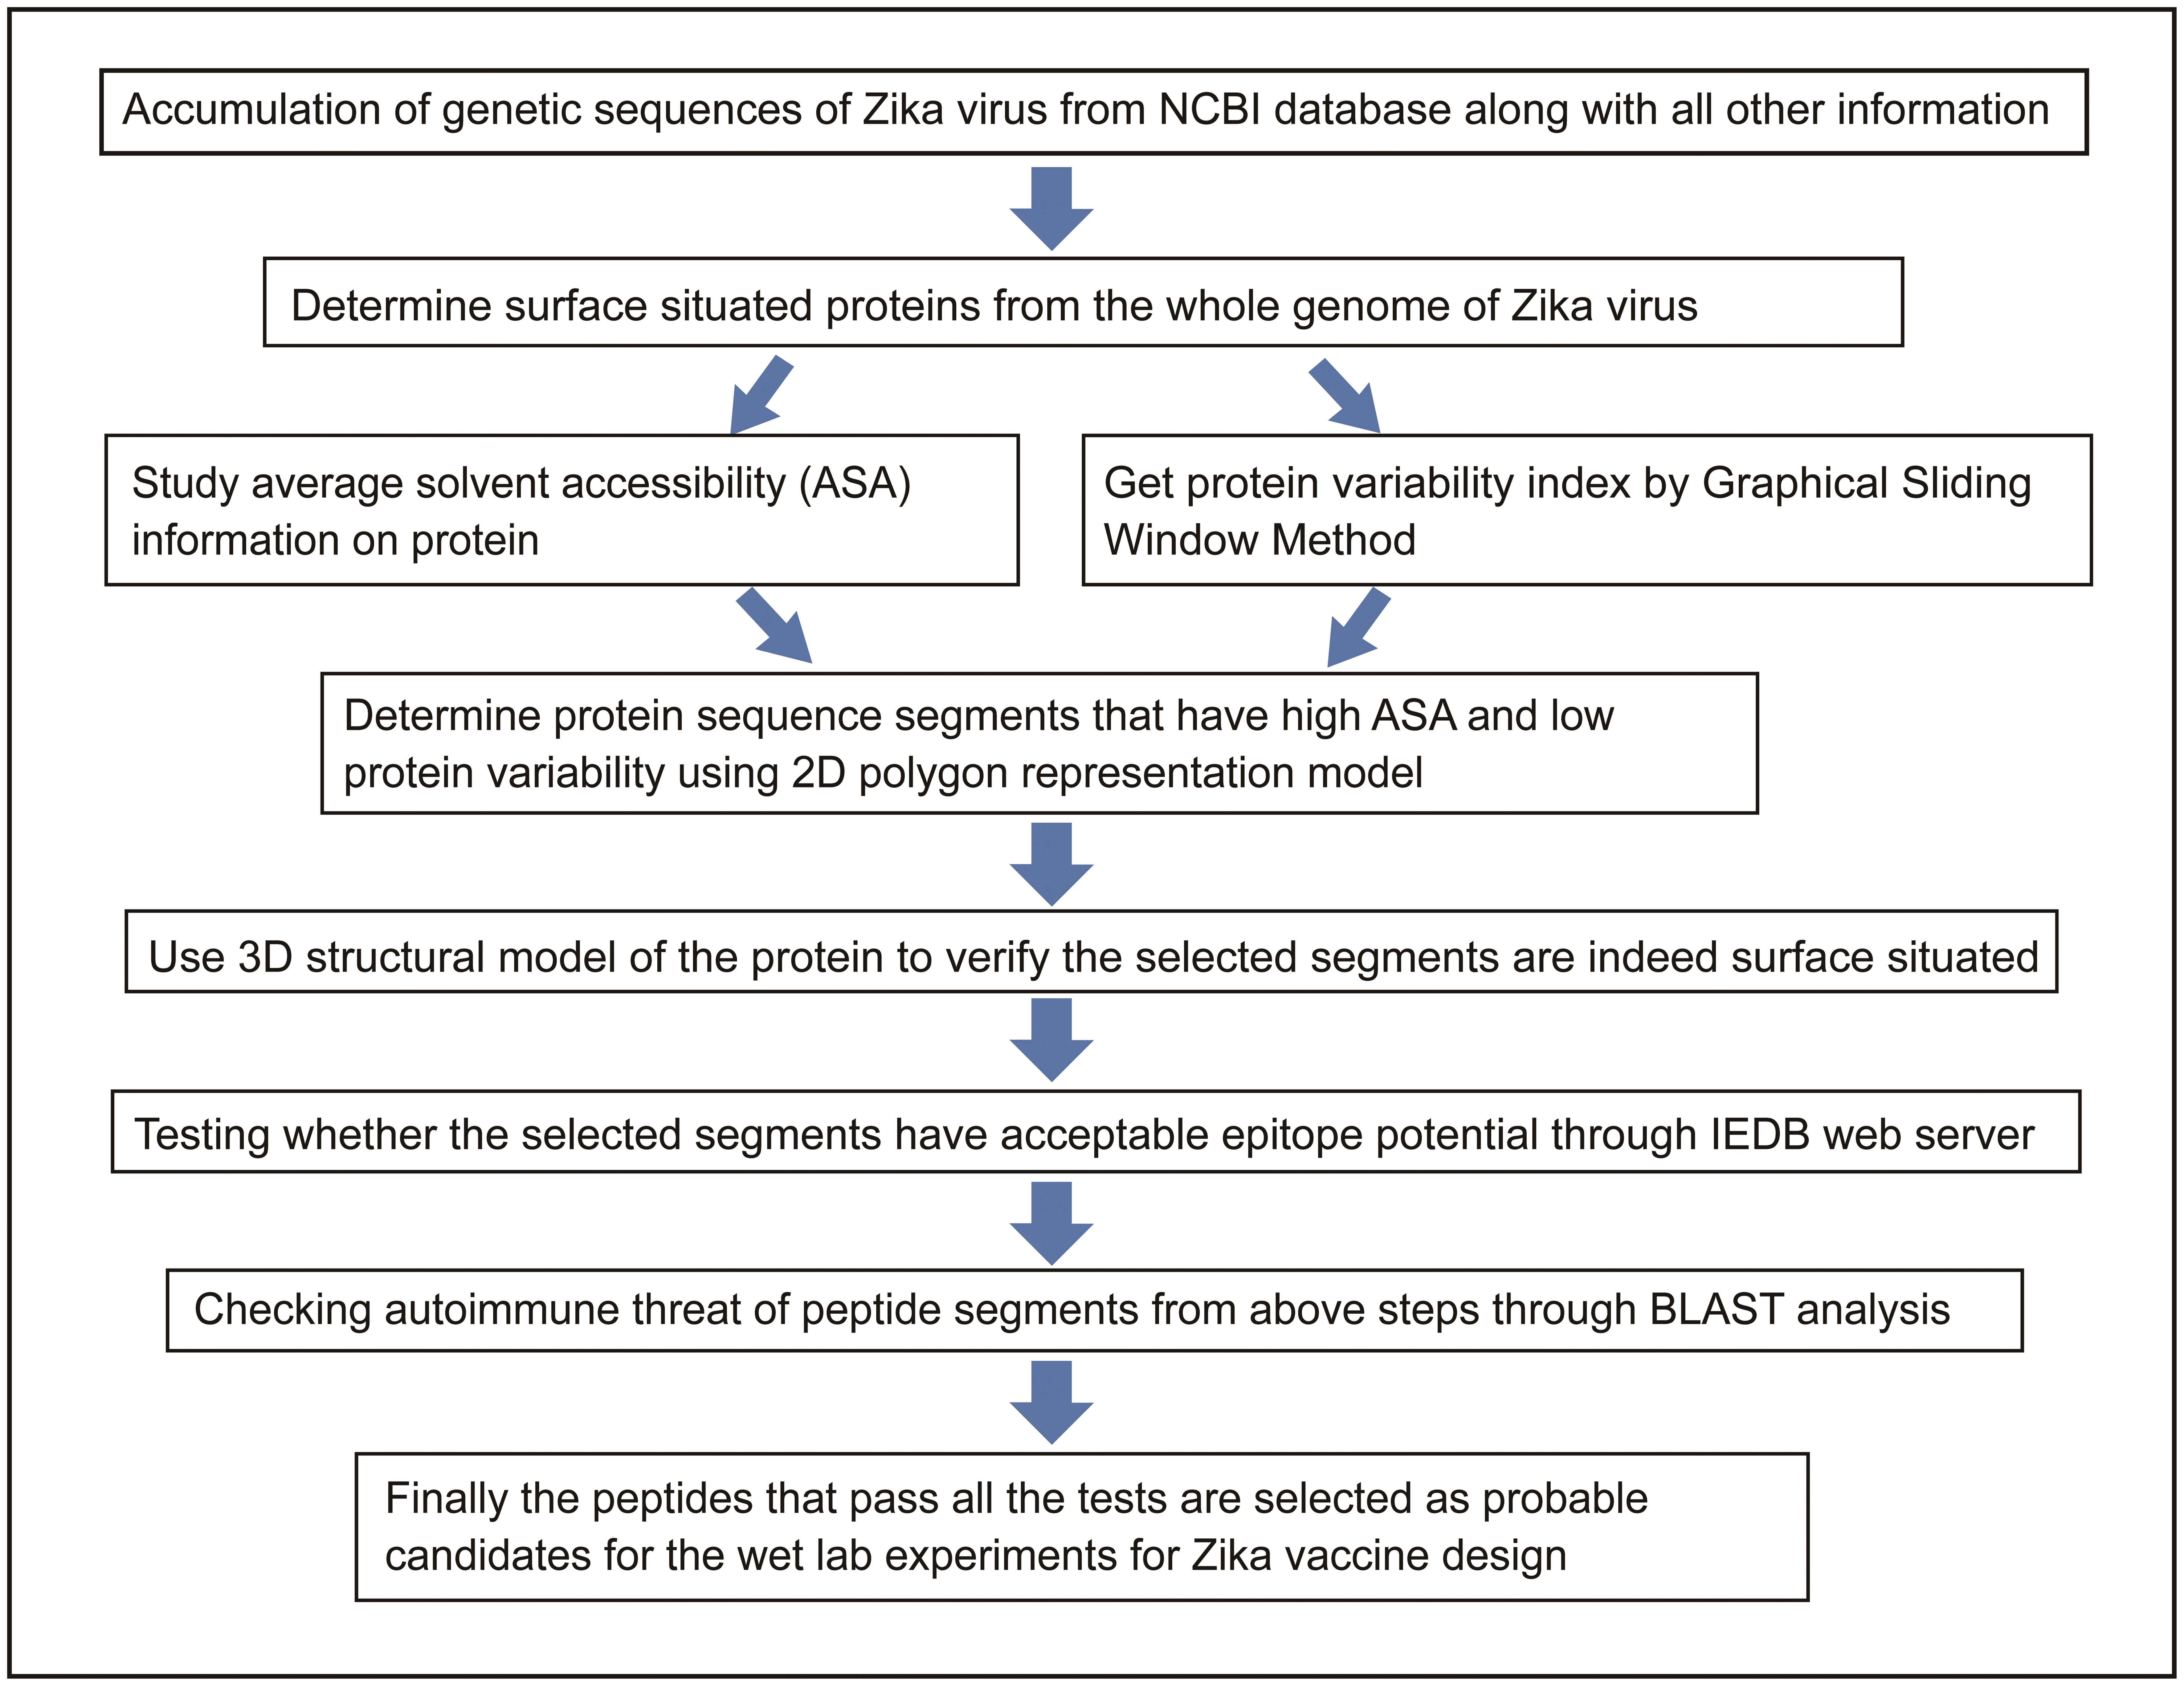 Flow chart describing the search for suitable peptide regions of Zika virus.